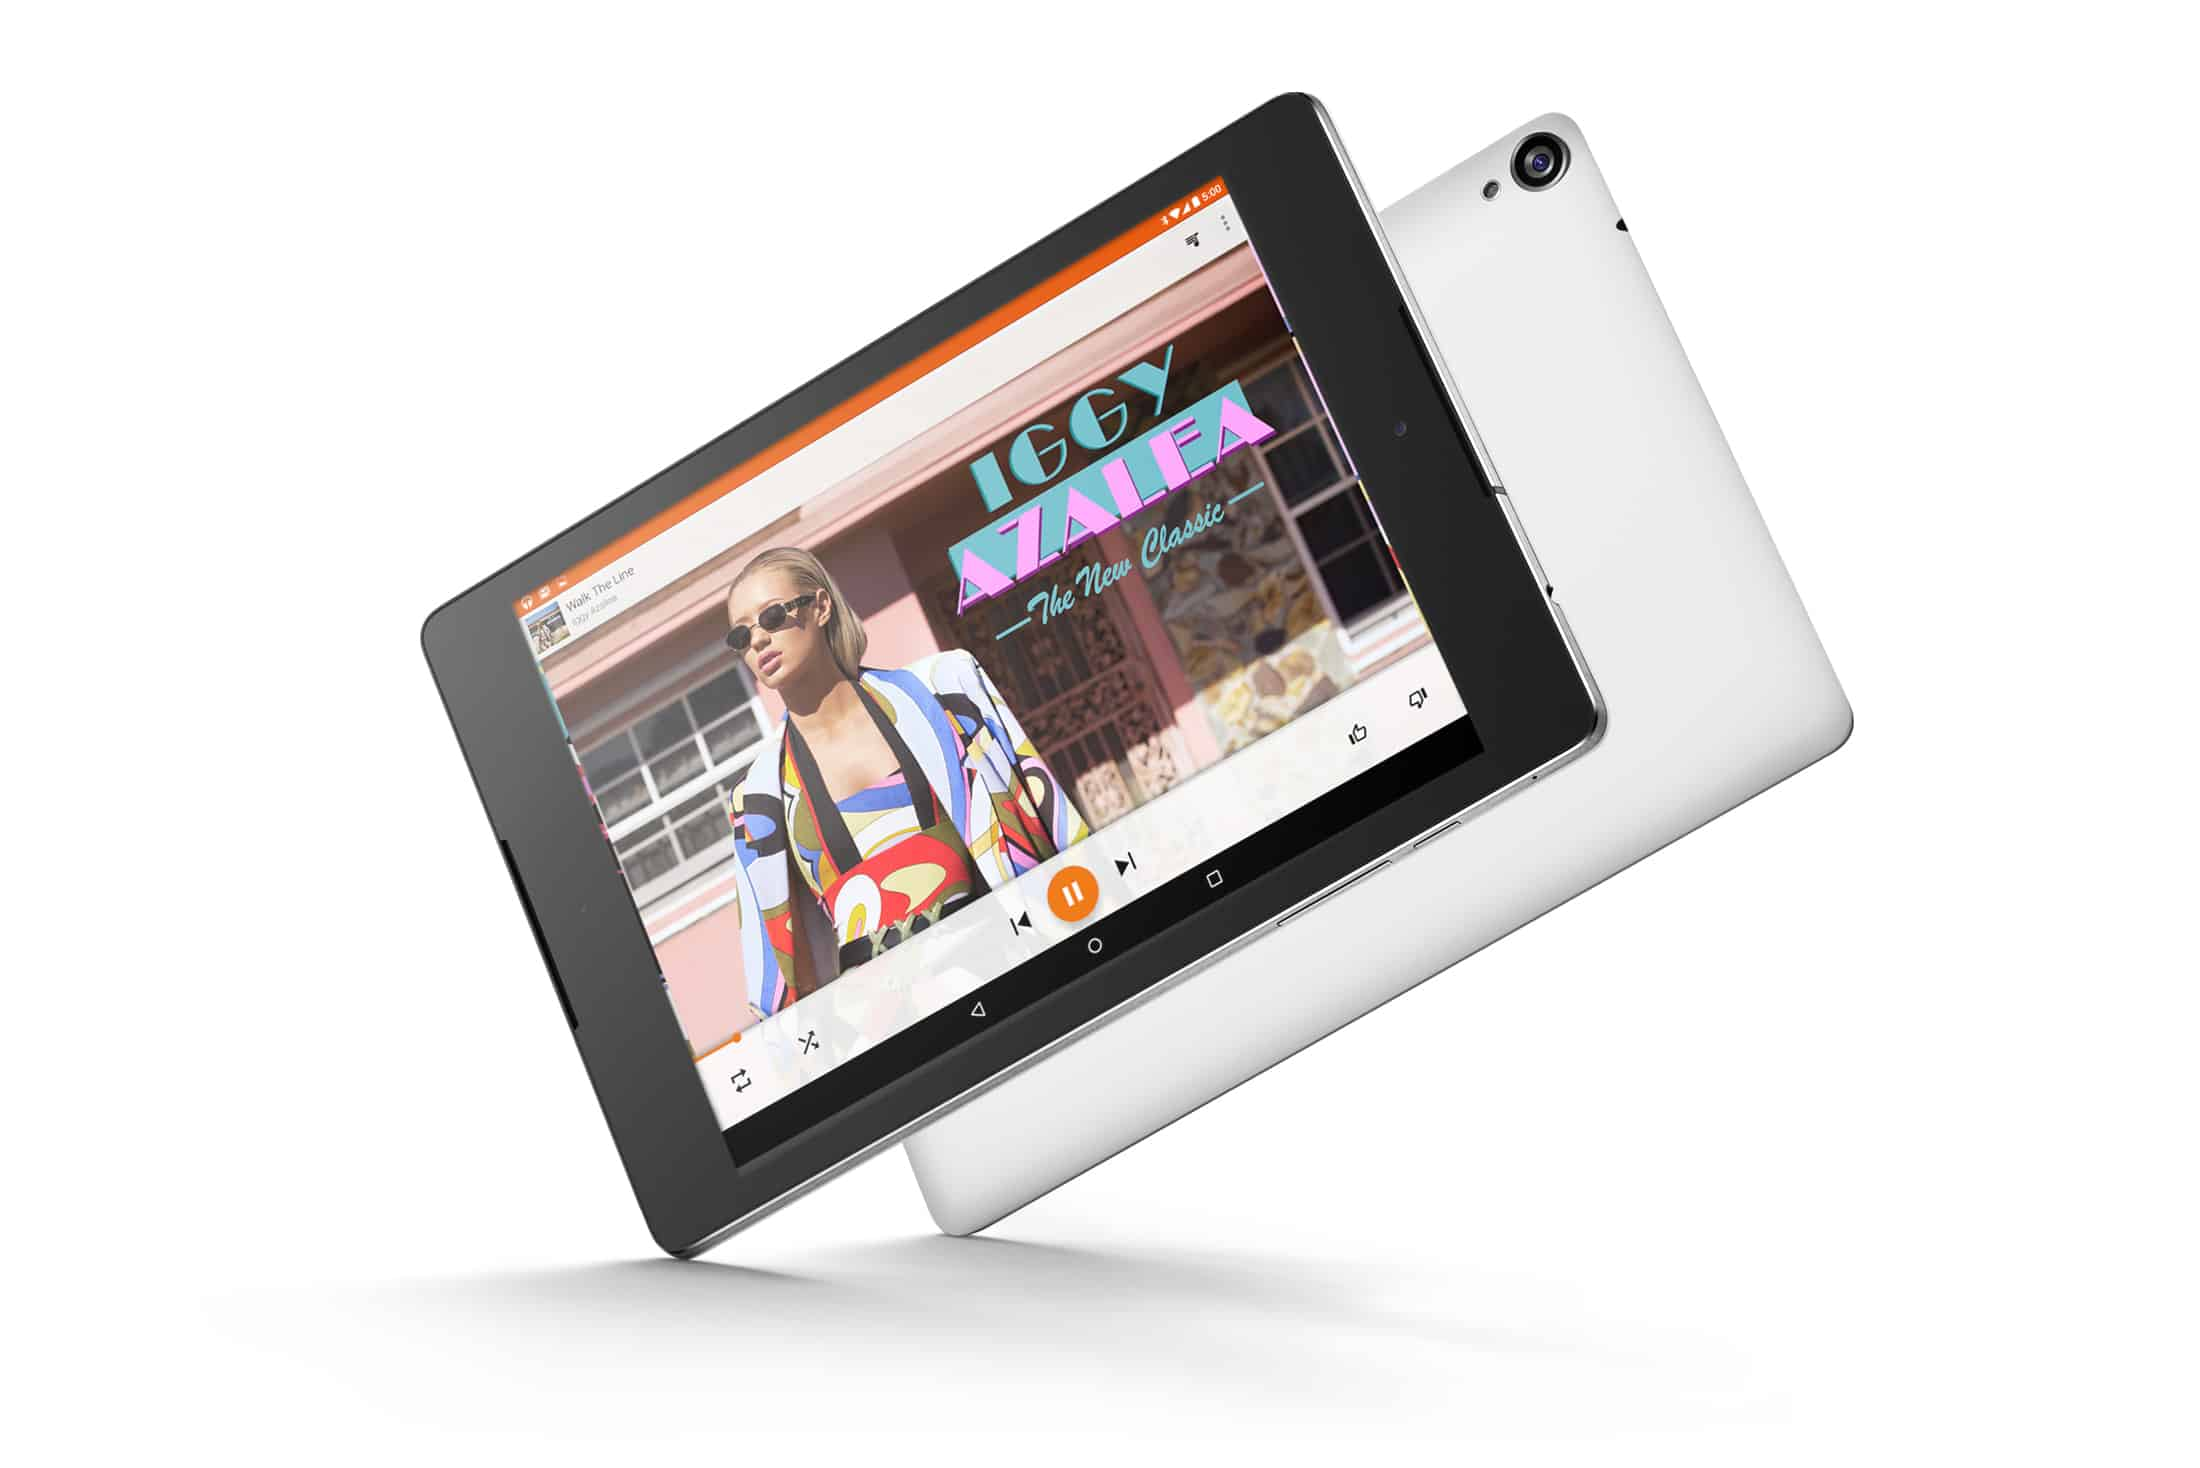 Officially Announces the Nexus 9 With 64bit NVIDIA Tegra K1 and 8.9